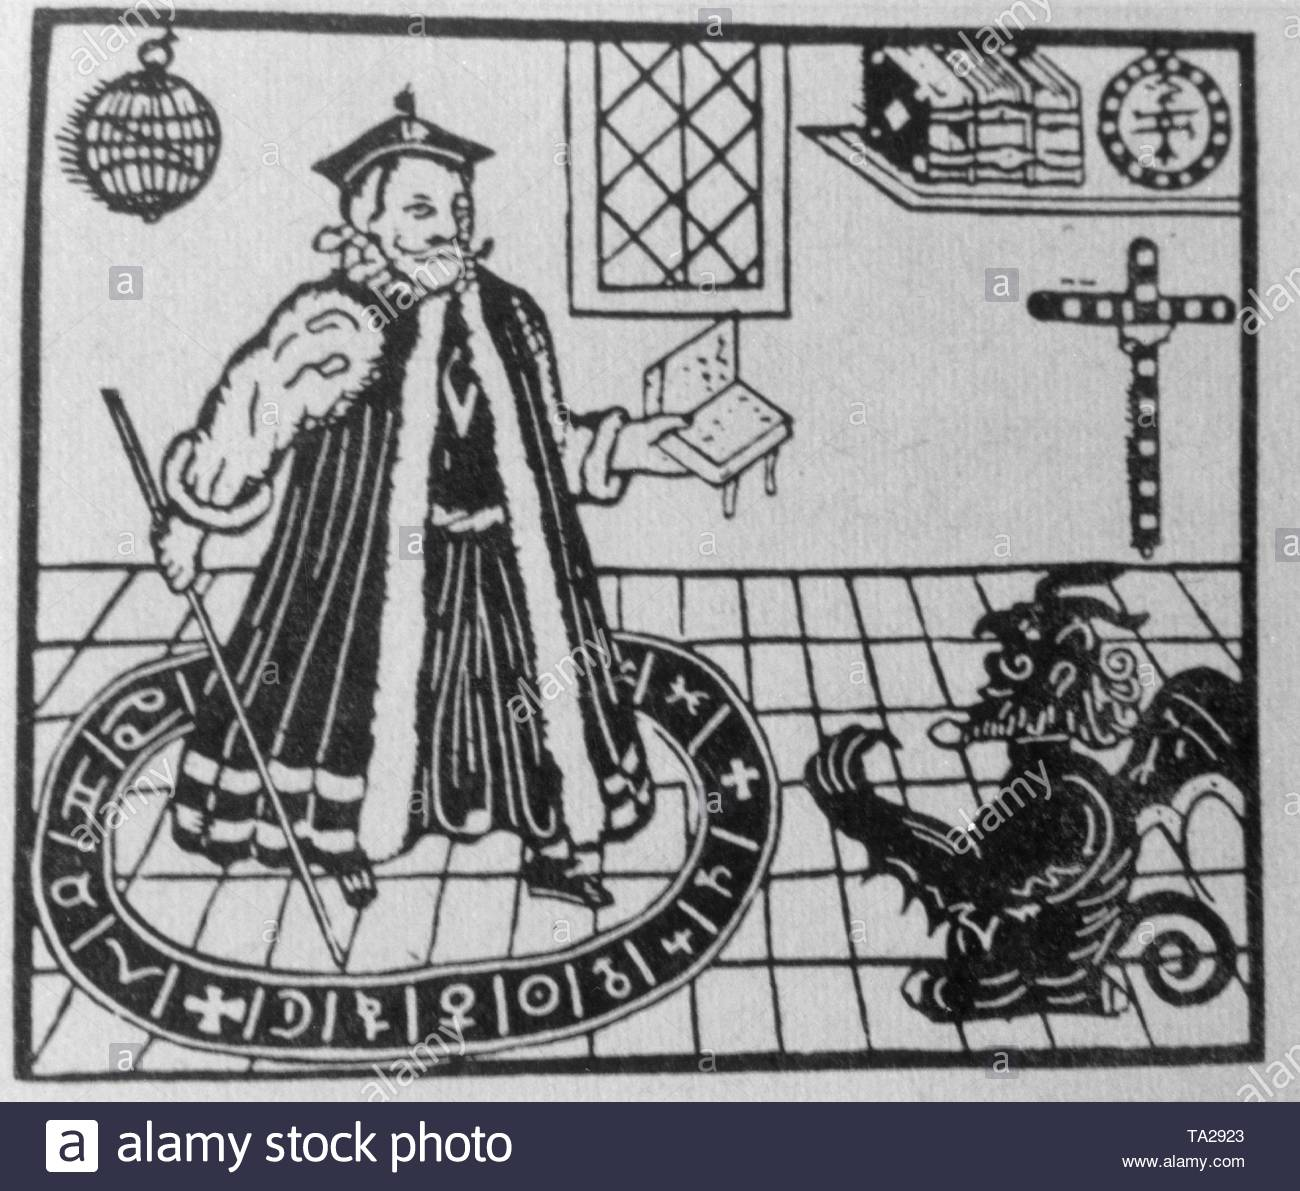 Doctor Faust, standing in the magic circle, summons the devil. Woodcut from the 16th century. - Stock Image